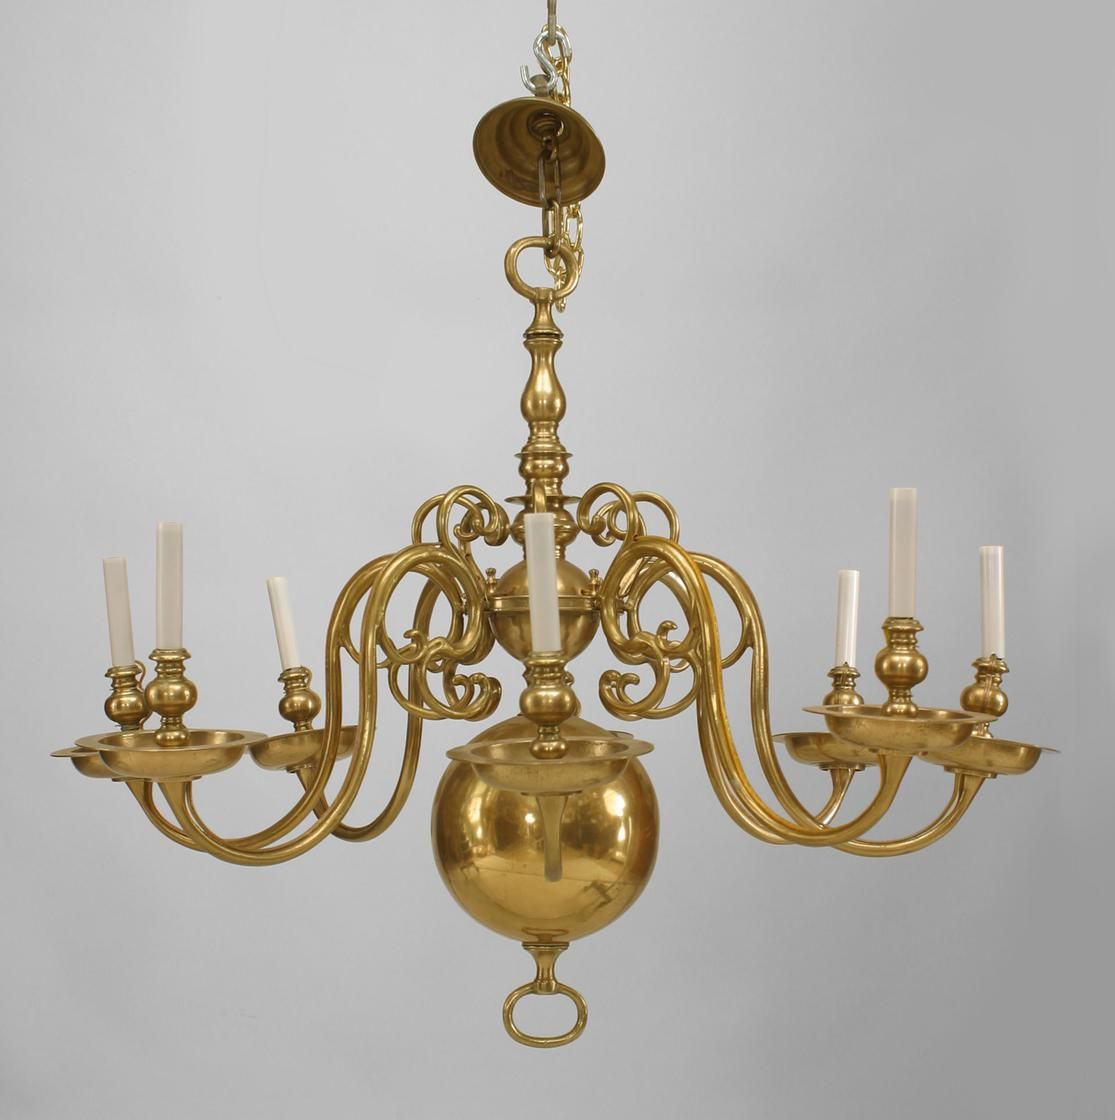 English Georgian Style Brass Chandelier With 8 Scroll Form Arms And An Open  Ring Bottom(